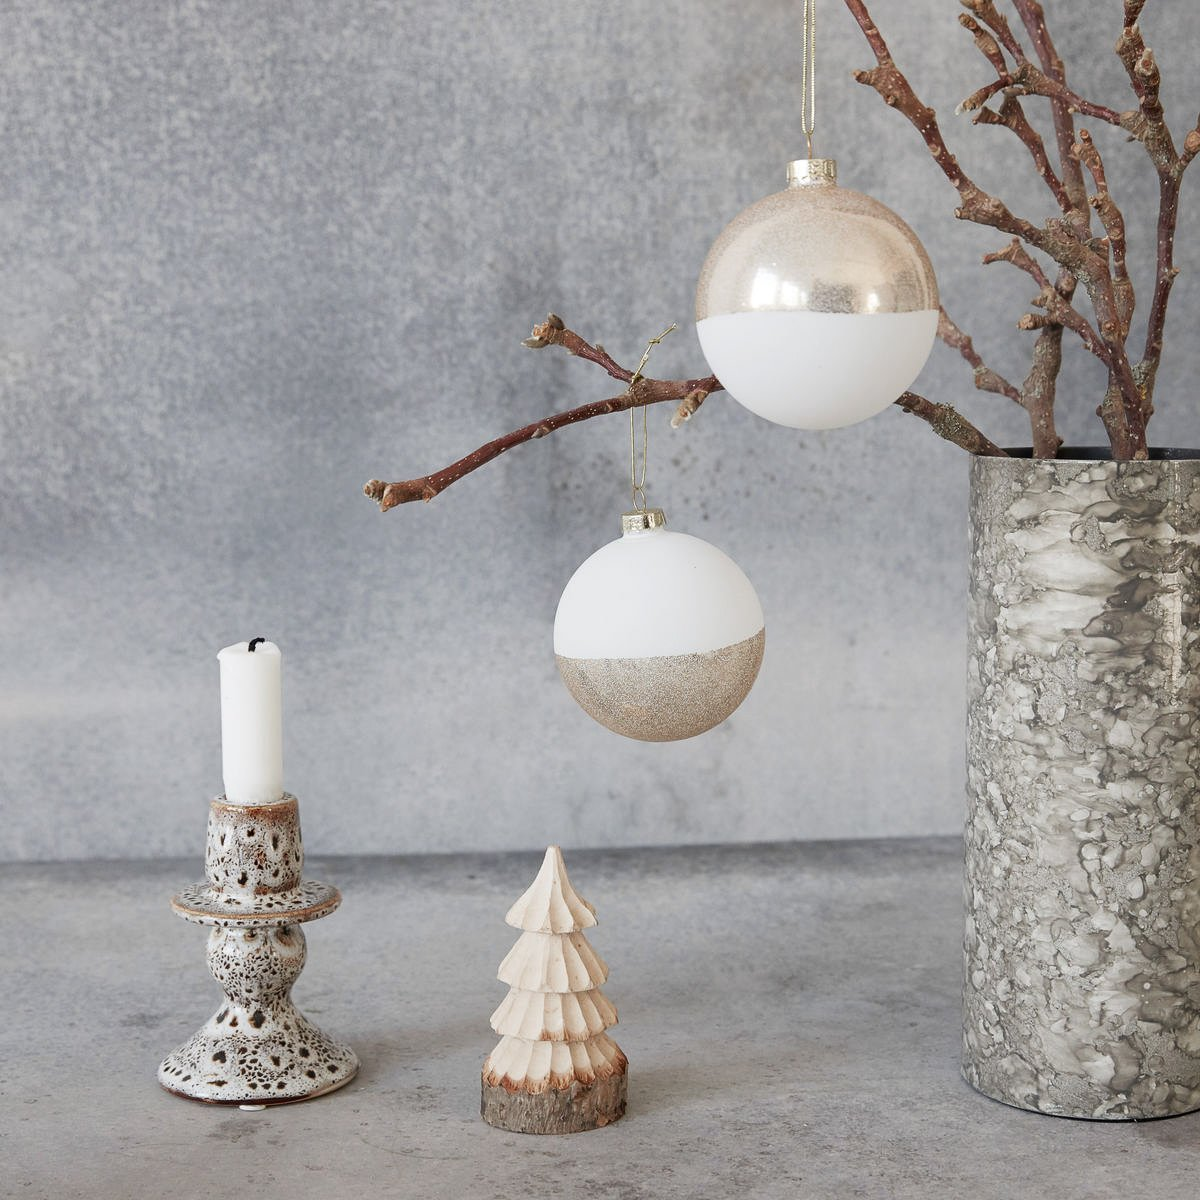 Two gold and white baubles